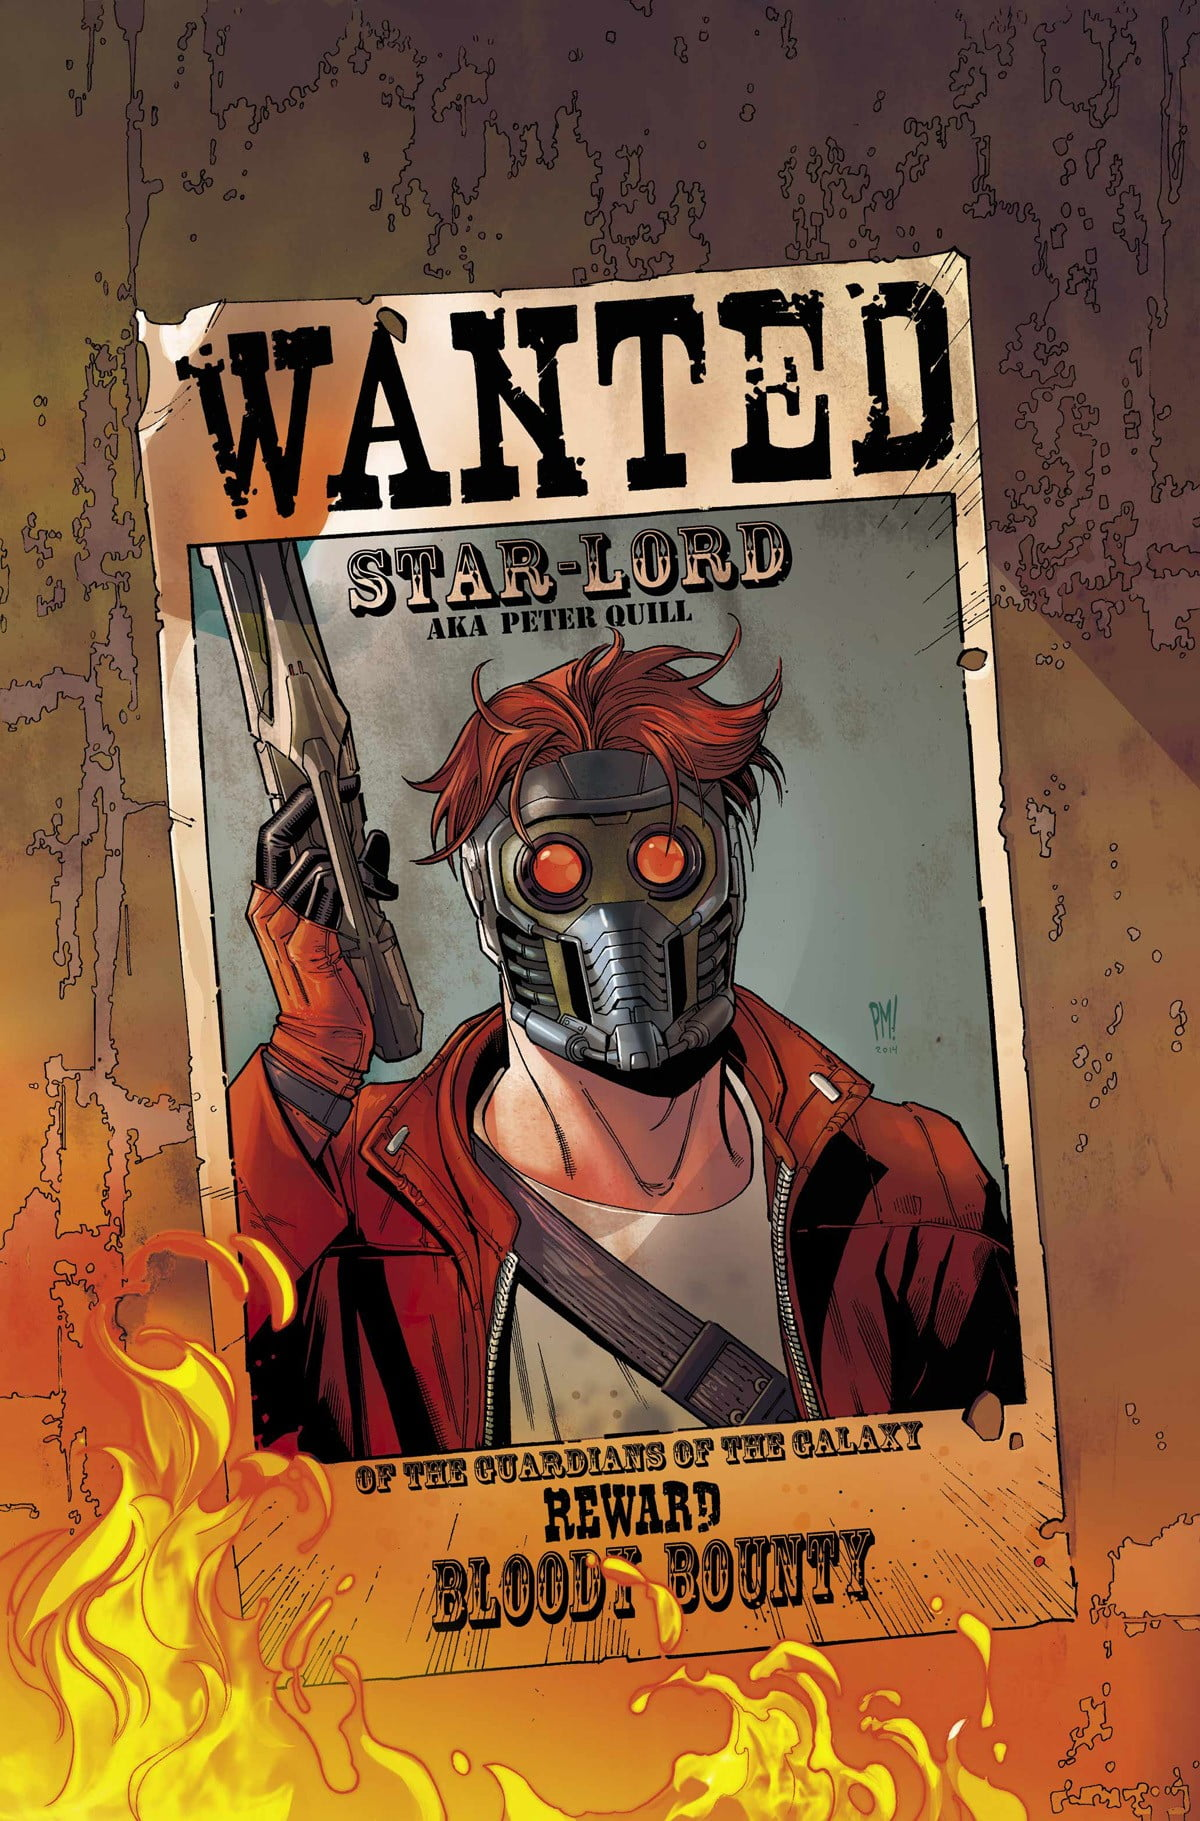 Wanted Star-lord Poster, Star Lord, Wanted, Guardians - Star Lord Comic Art , HD Wallpaper & Backgrounds